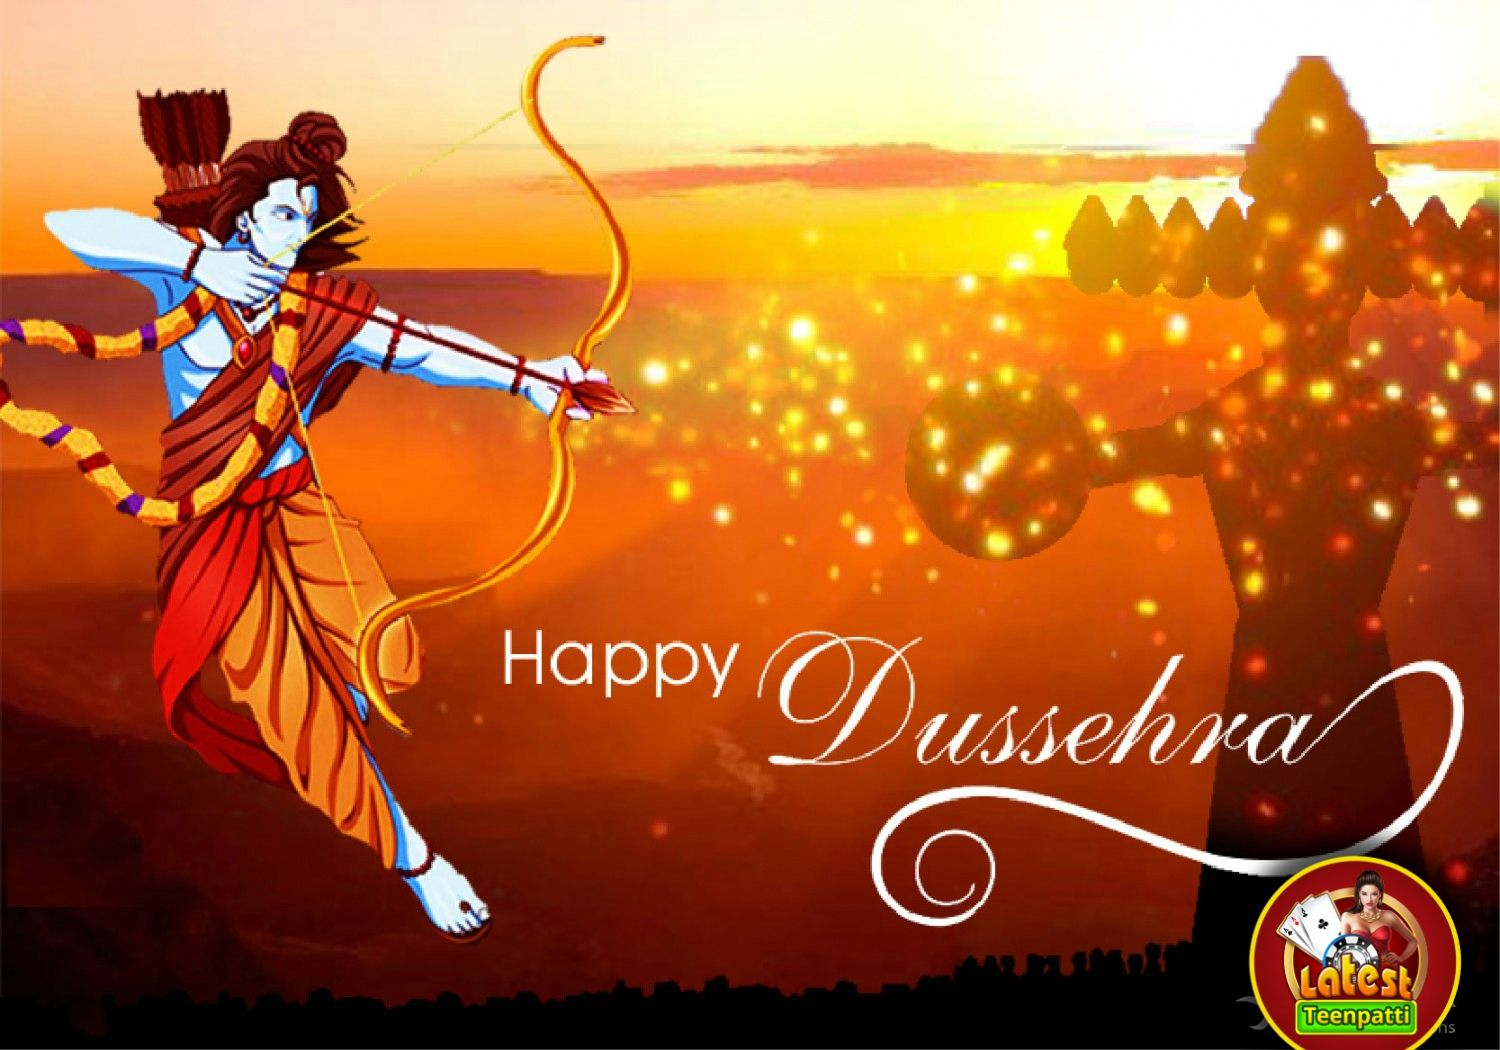 Wishing You A Very Happy Dussehra Keep Enjoying And Stay Blessed